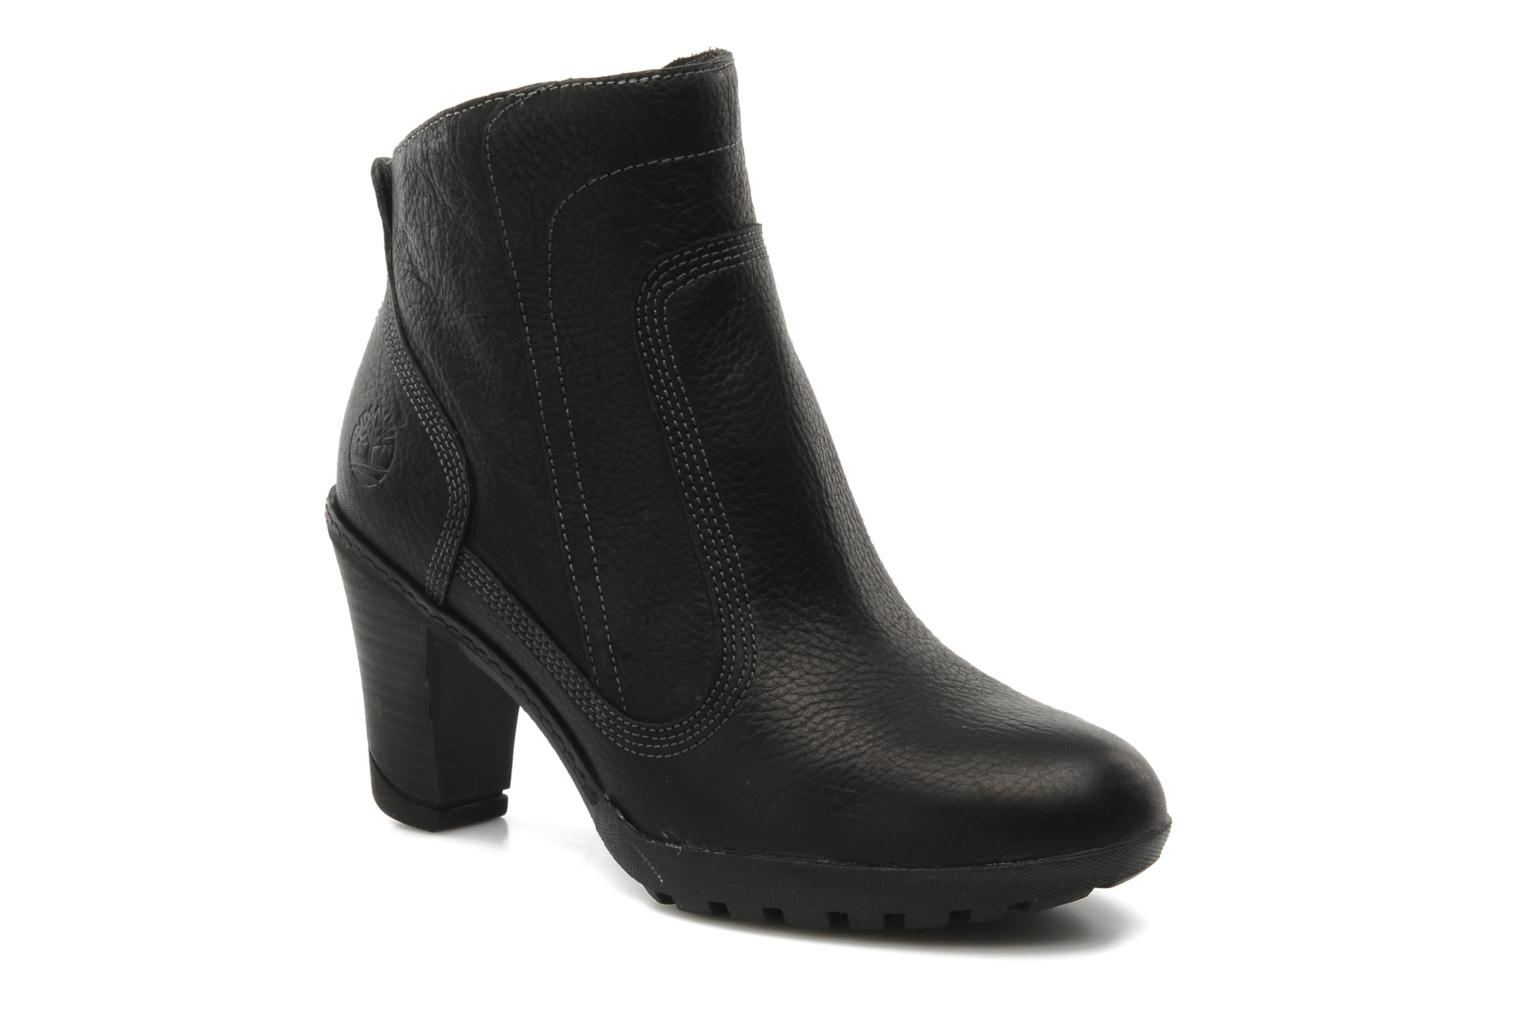 Stratham Heights Ankle Boot Black